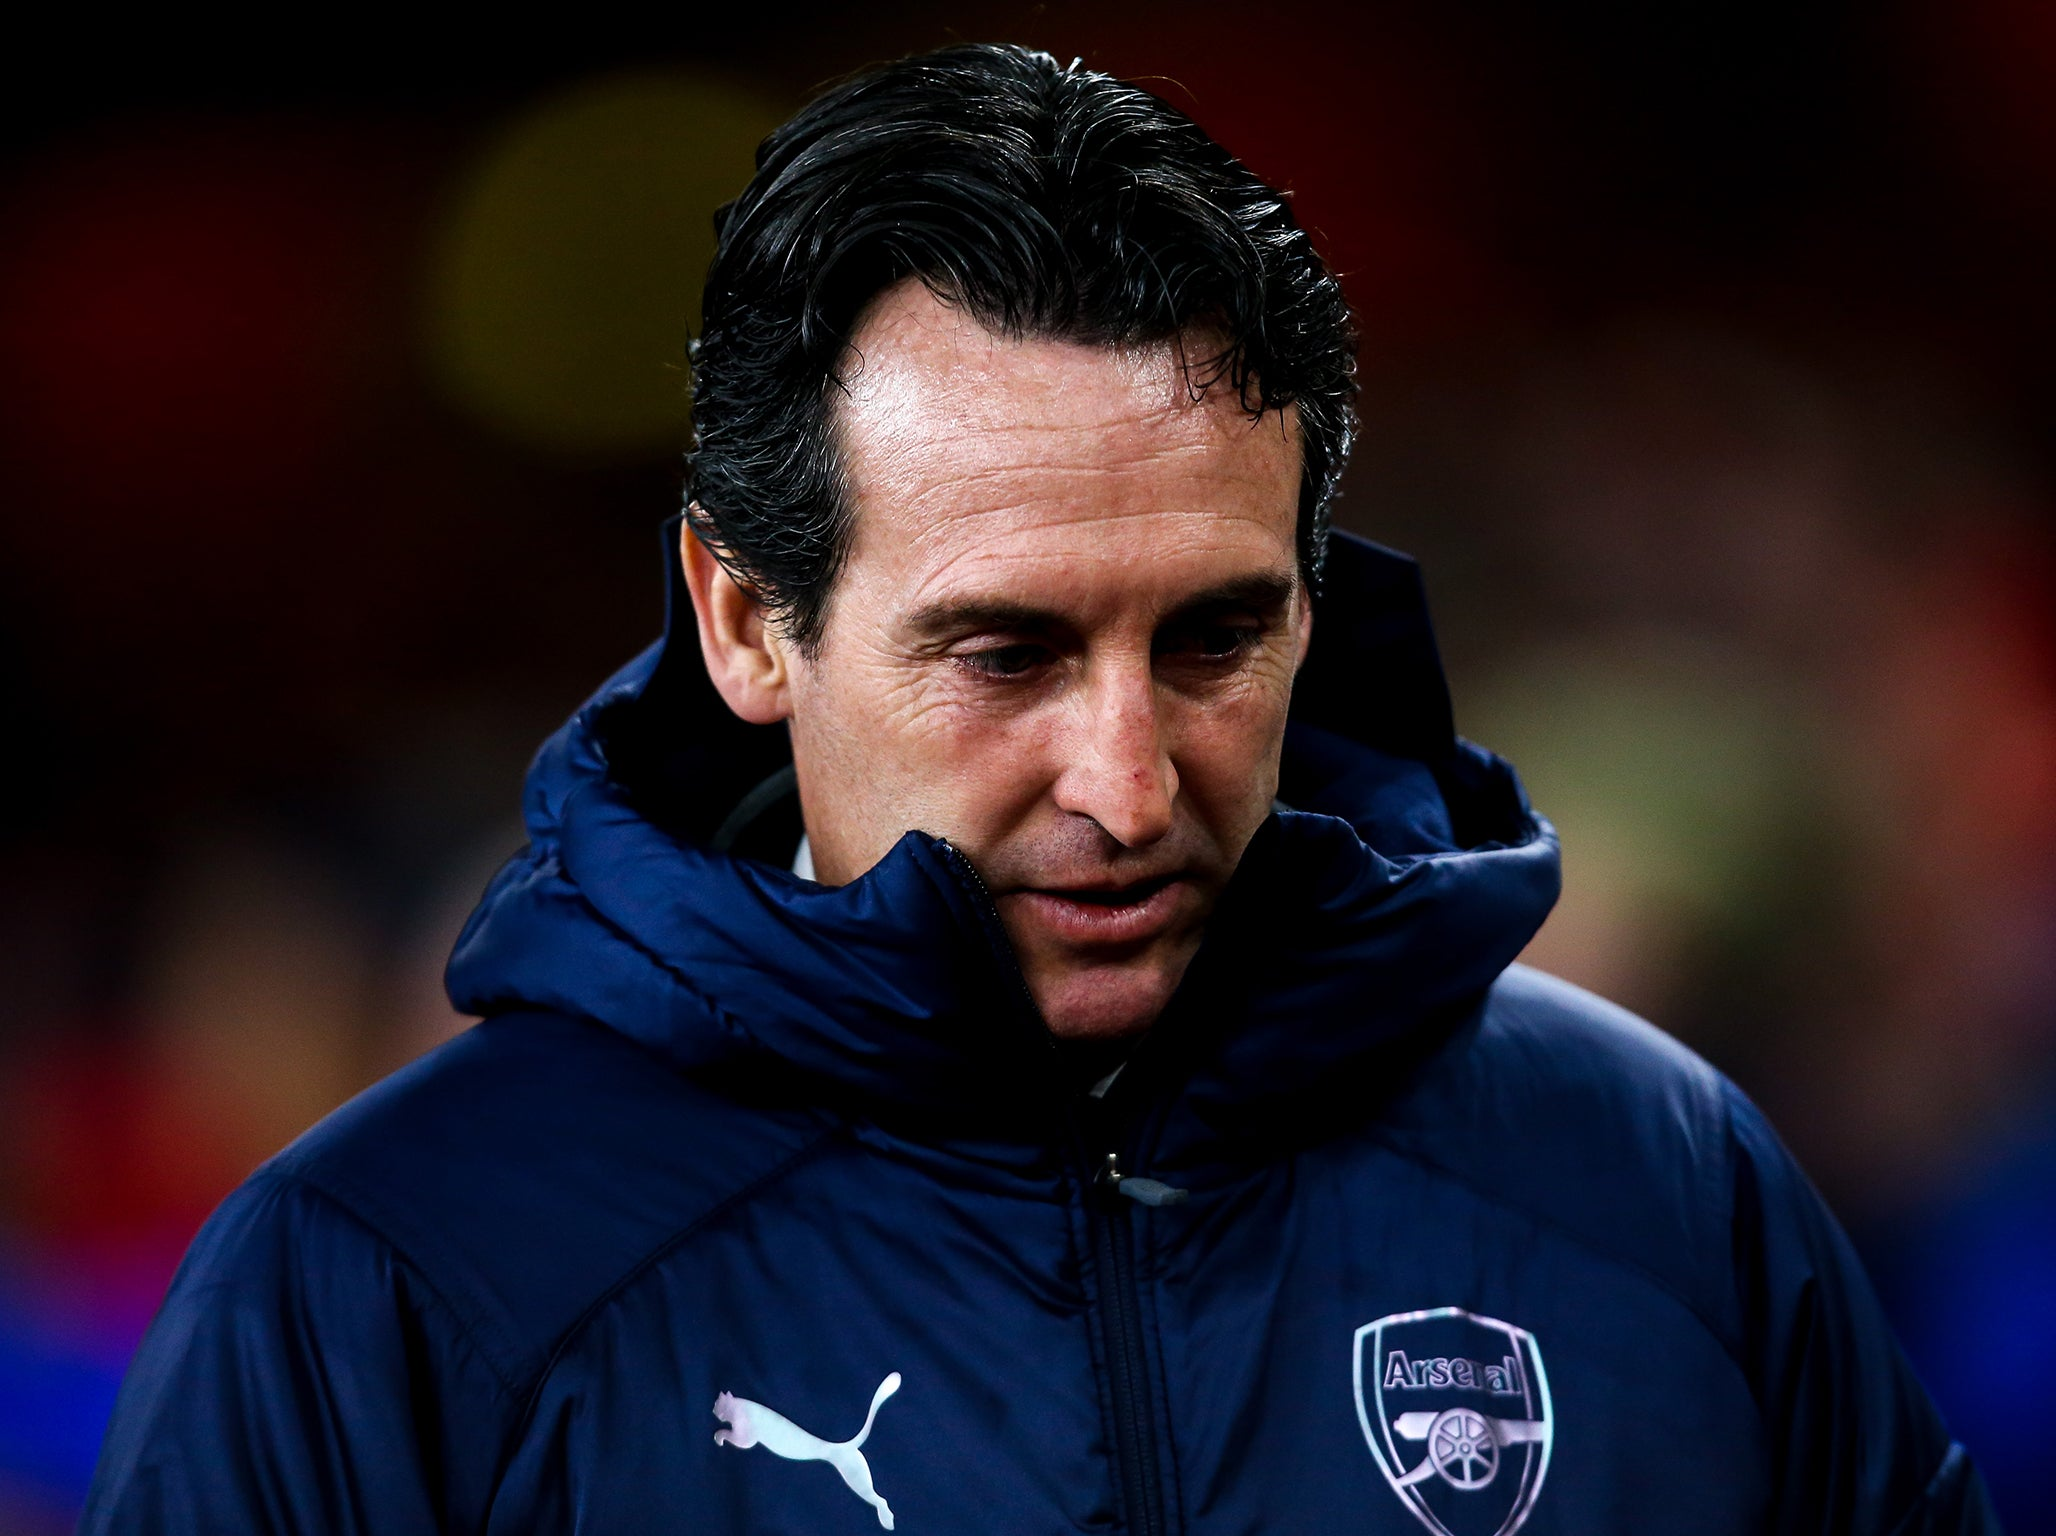 f788afb2f Arsenal lose both Laurent Koscielny and Sokratis against Manchester United  to leave Unai Emery feeling the heat